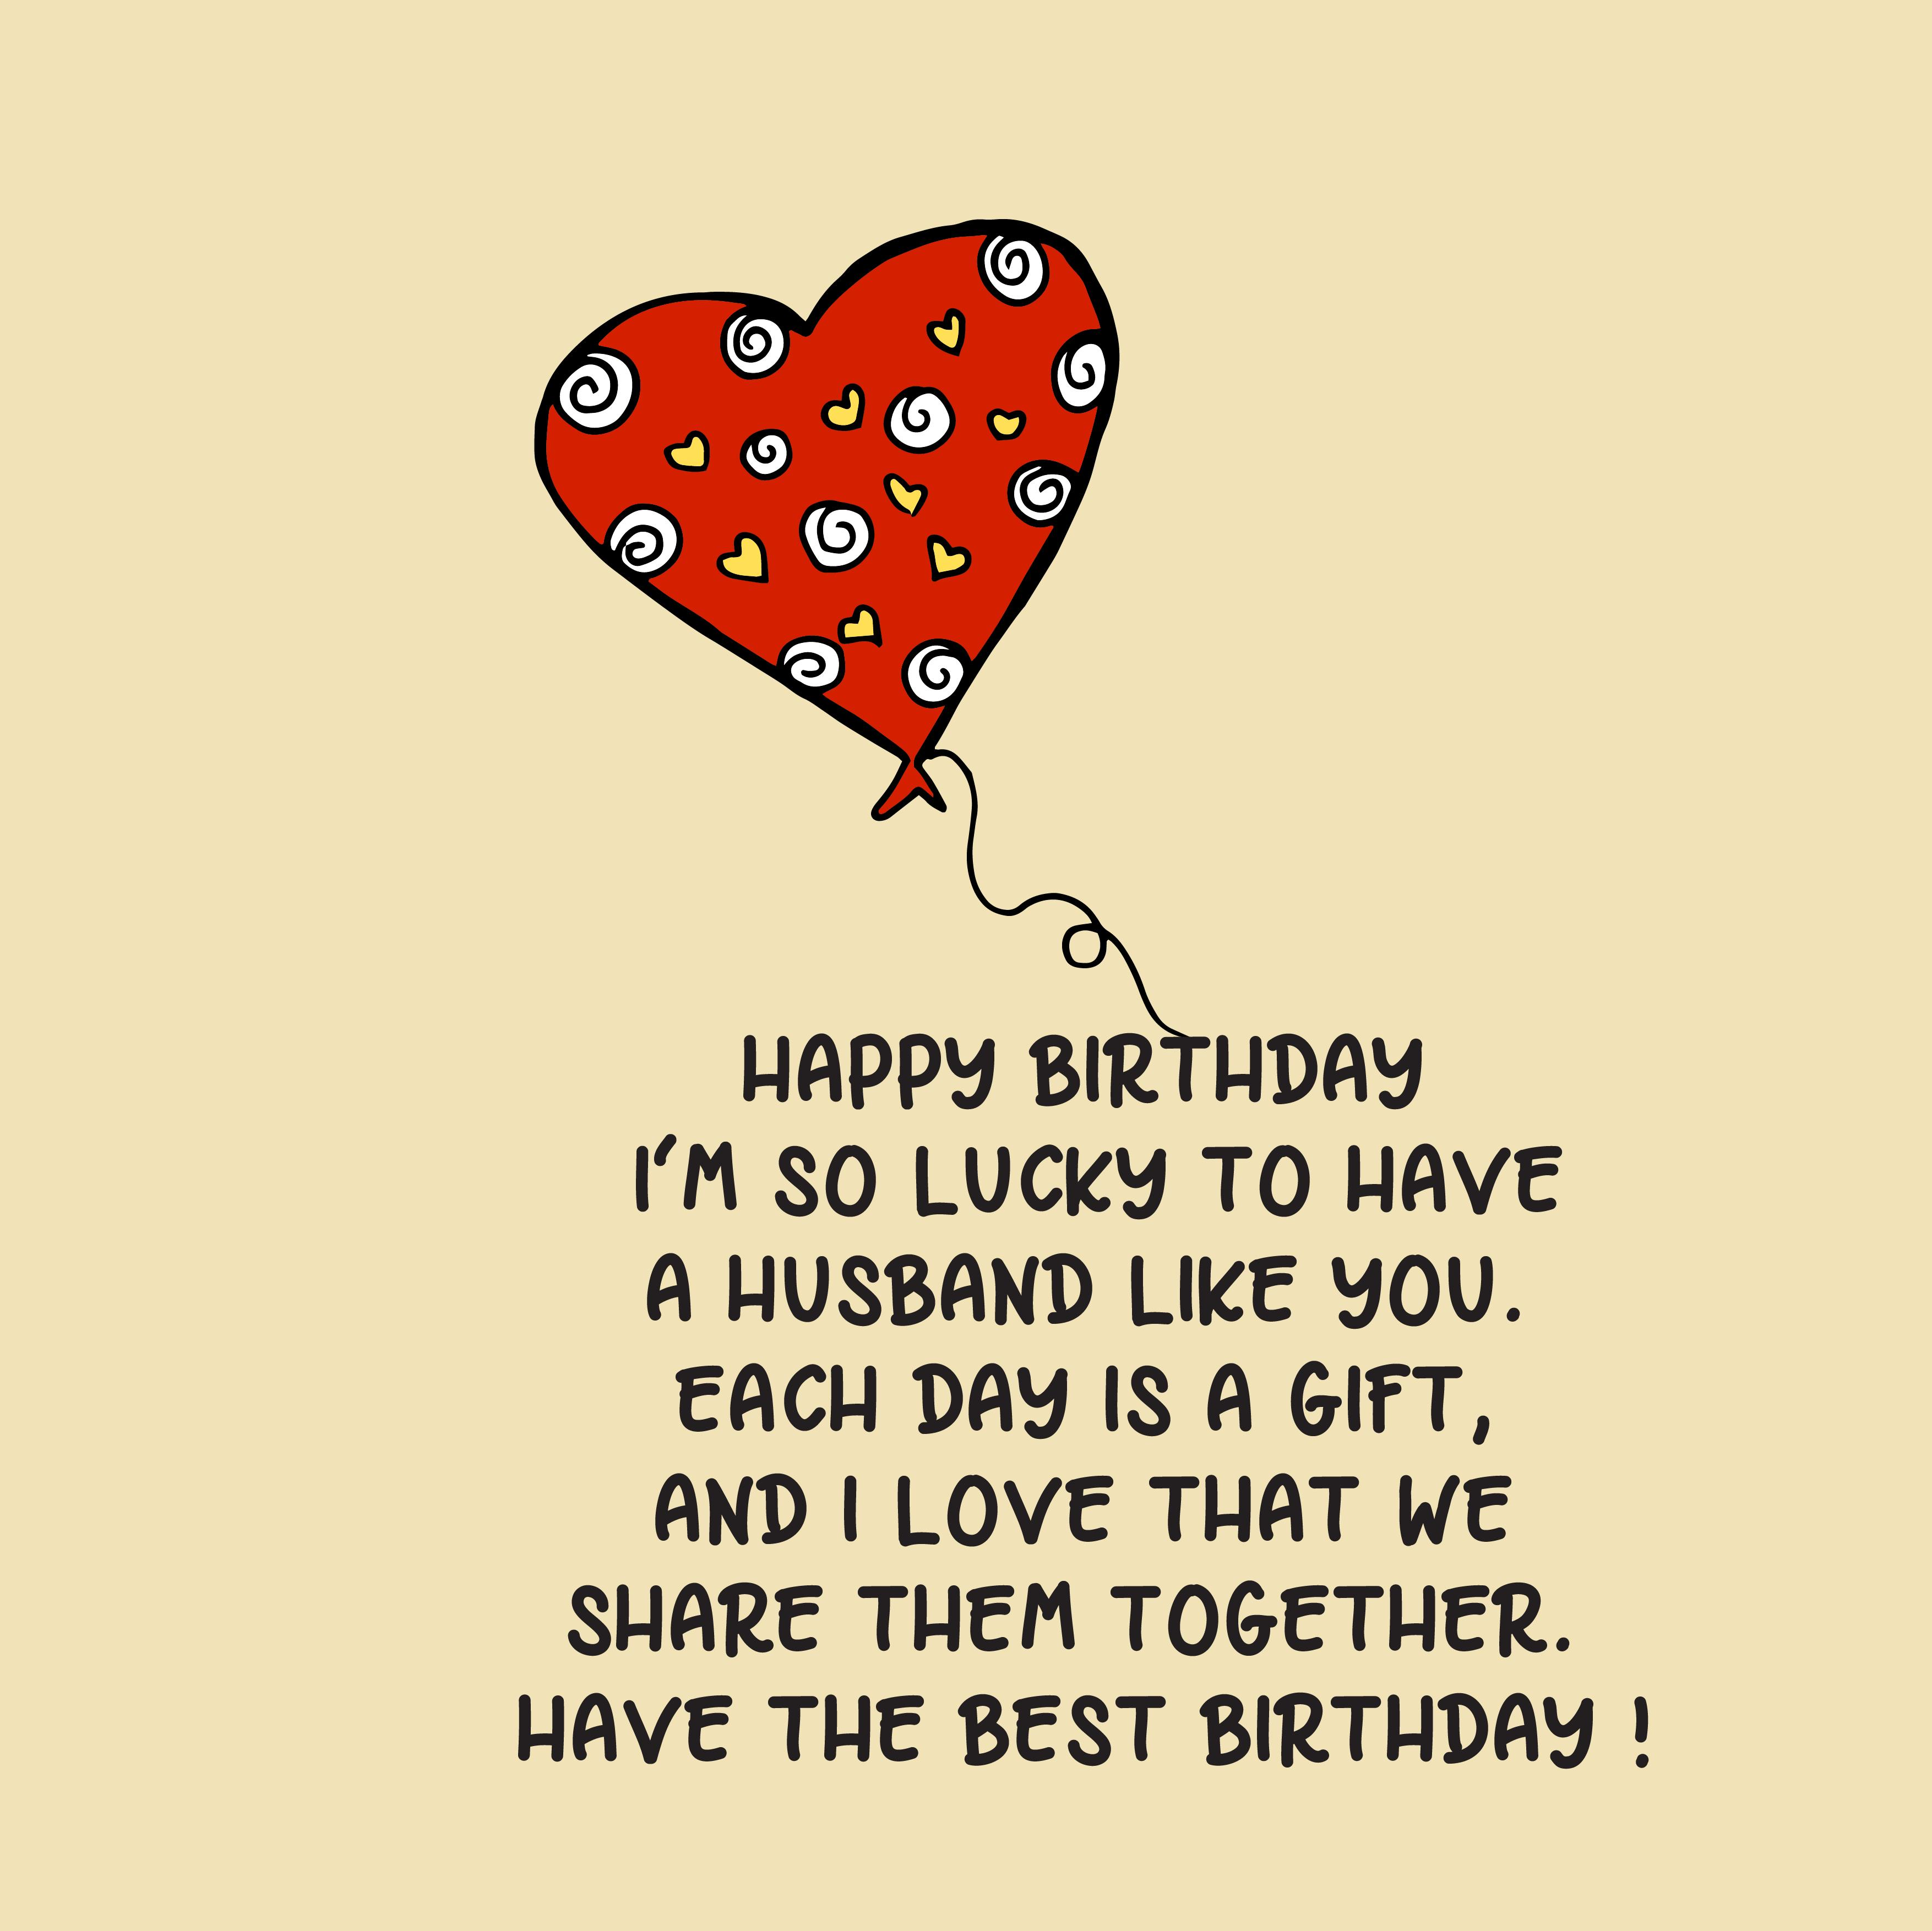 birthday-wishes-for-husband-03